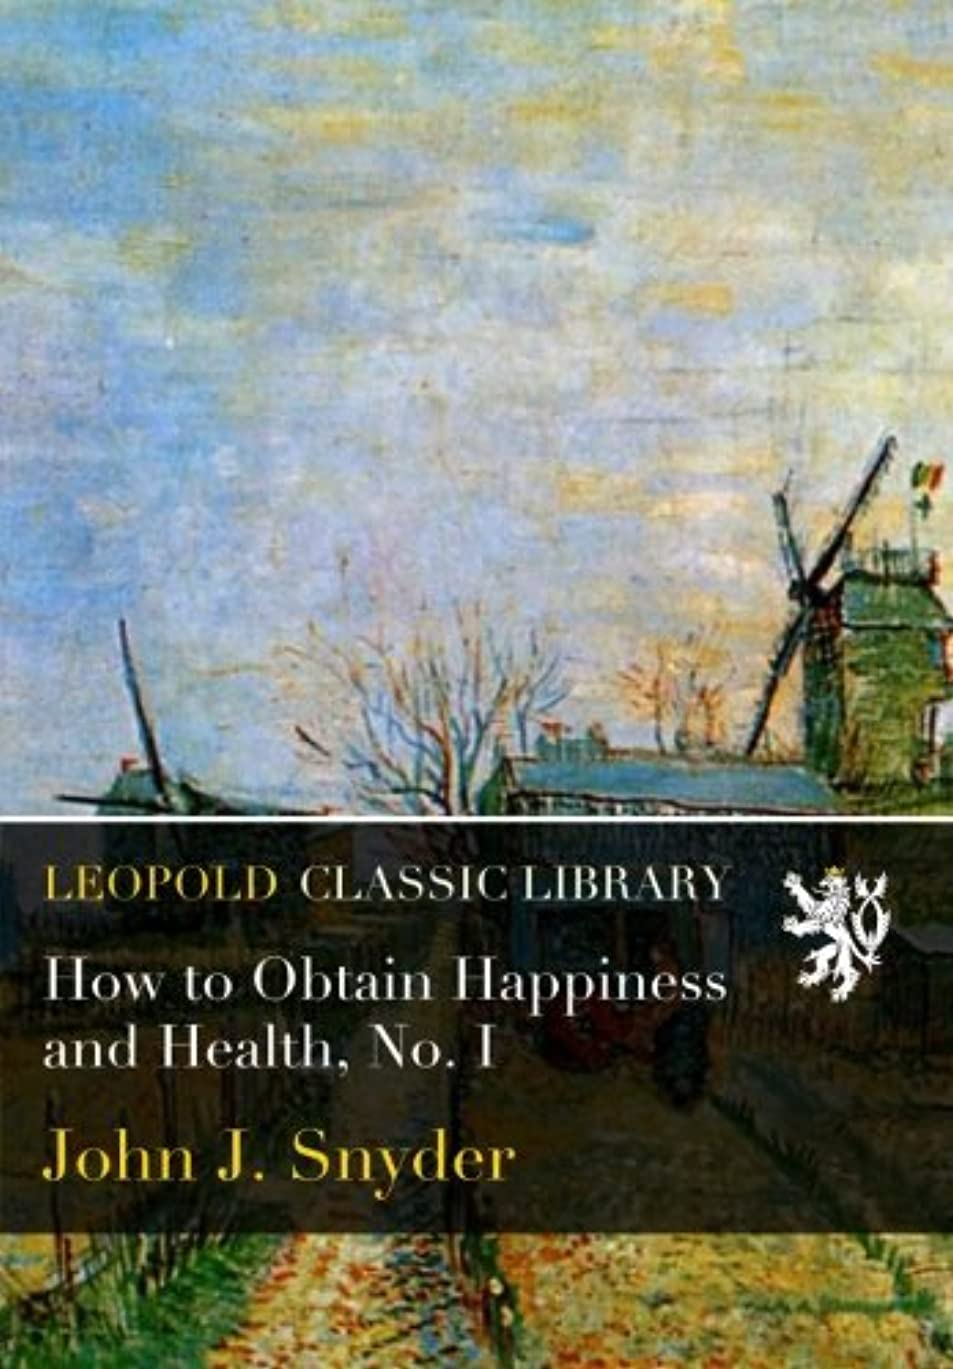 カプセル細菌原告How to Obtain Happiness and Health, No. I